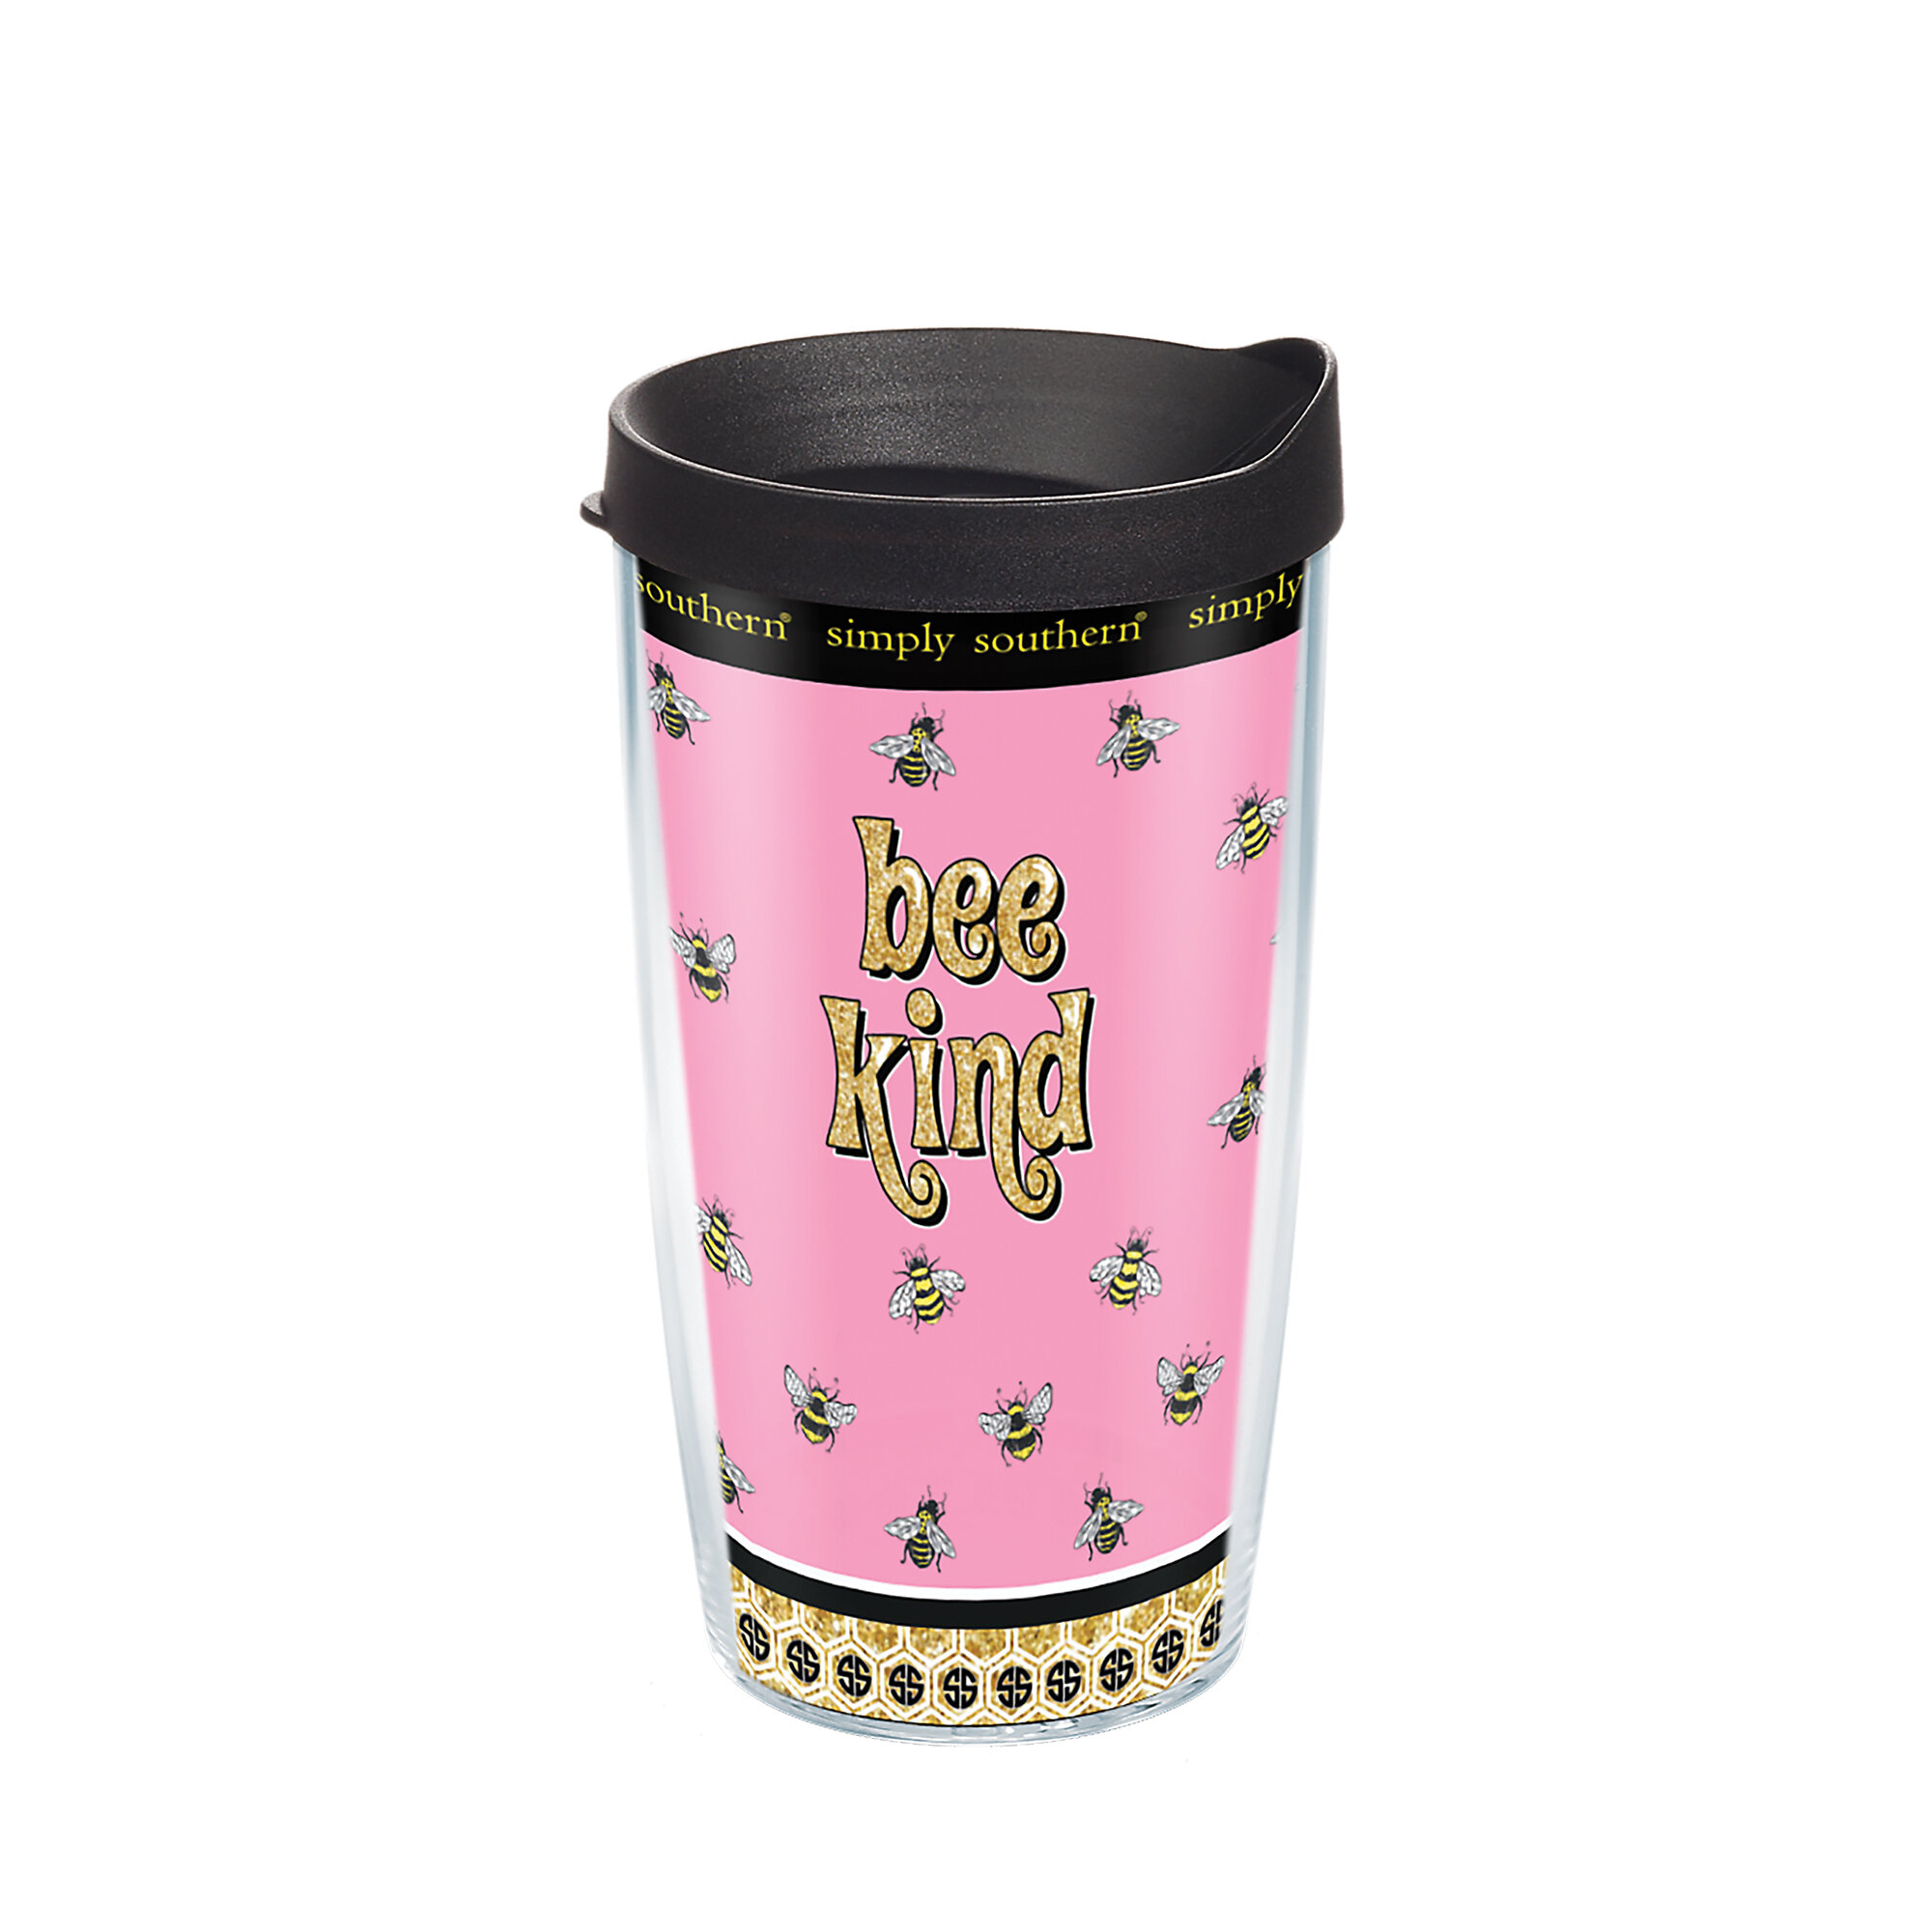 Tervis Tumbler Tervis Simply Southern Bee Kind Insulated Tumbler Wayfair